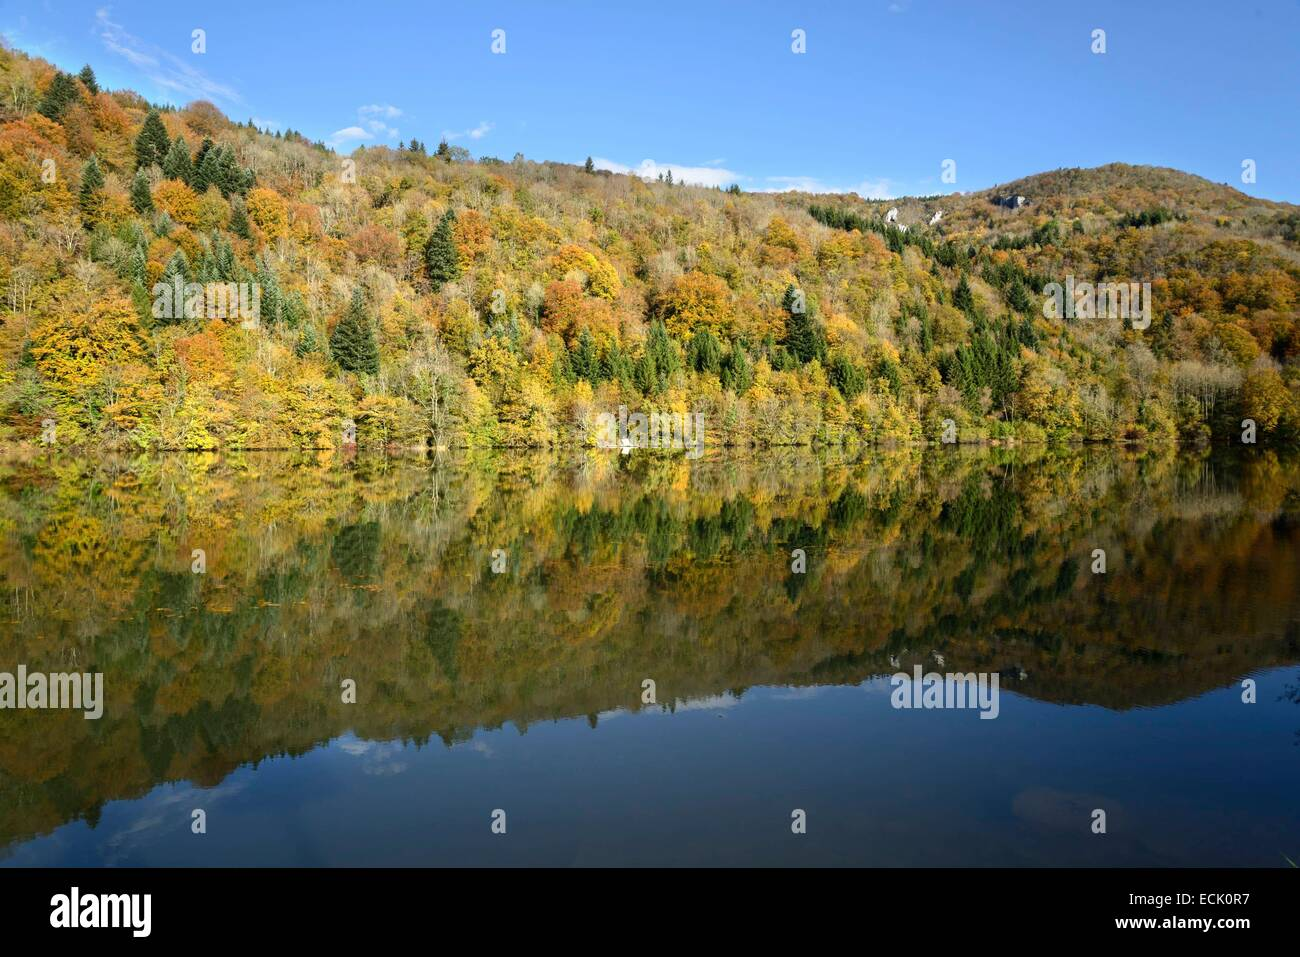 France, Doubs, Vaufrey, Doubs valley, reflecting the autumn forest in the basin of the Doubs - Stock Image